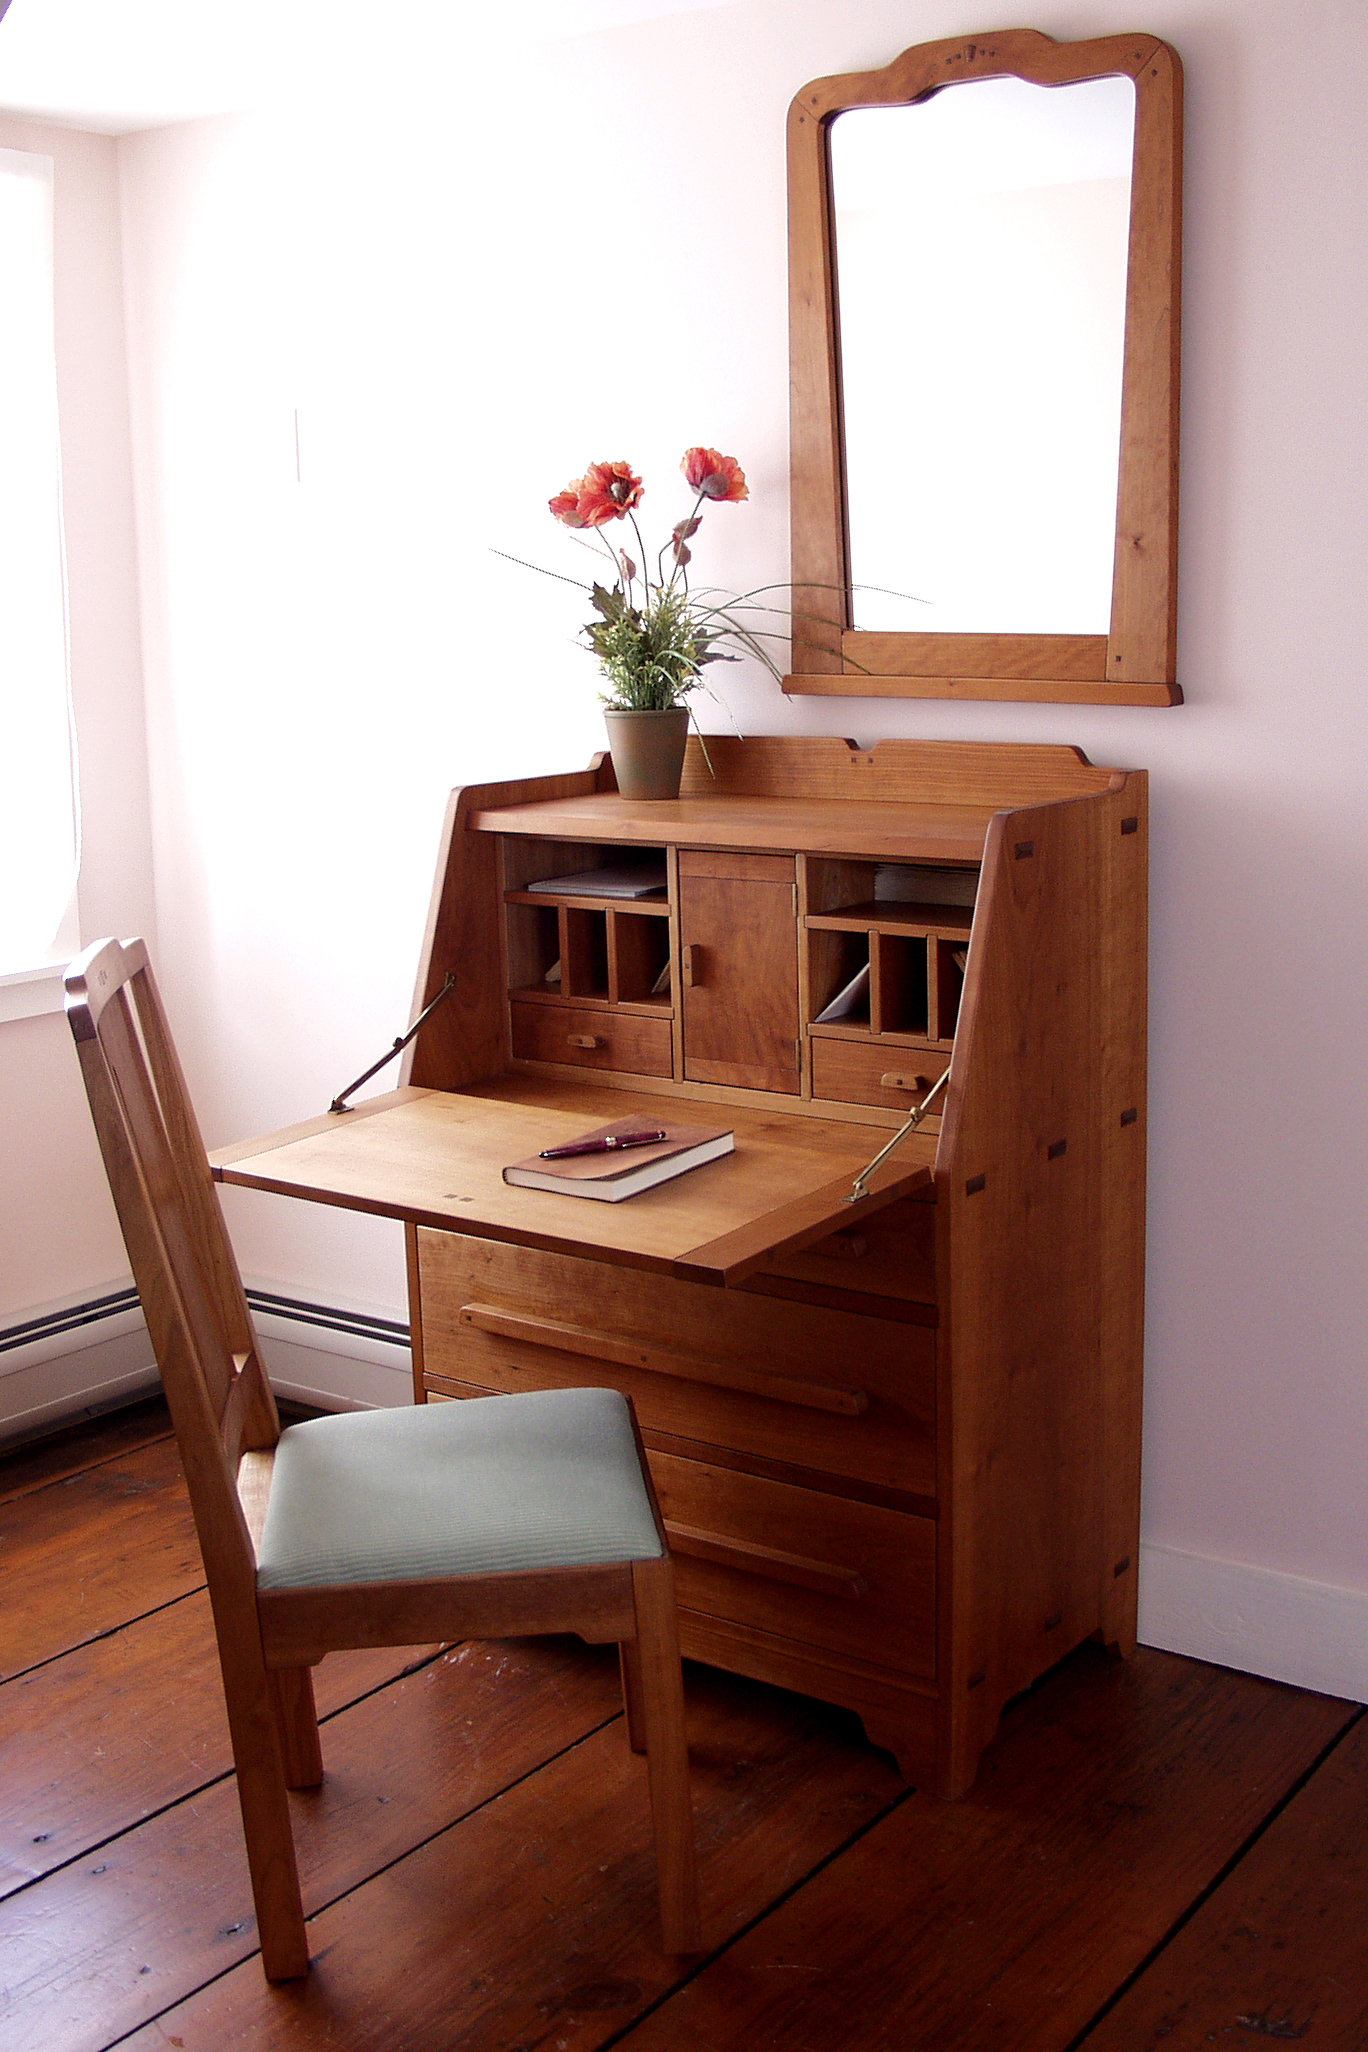 Arts and crafts style dining table - Dorset Custom Furniture